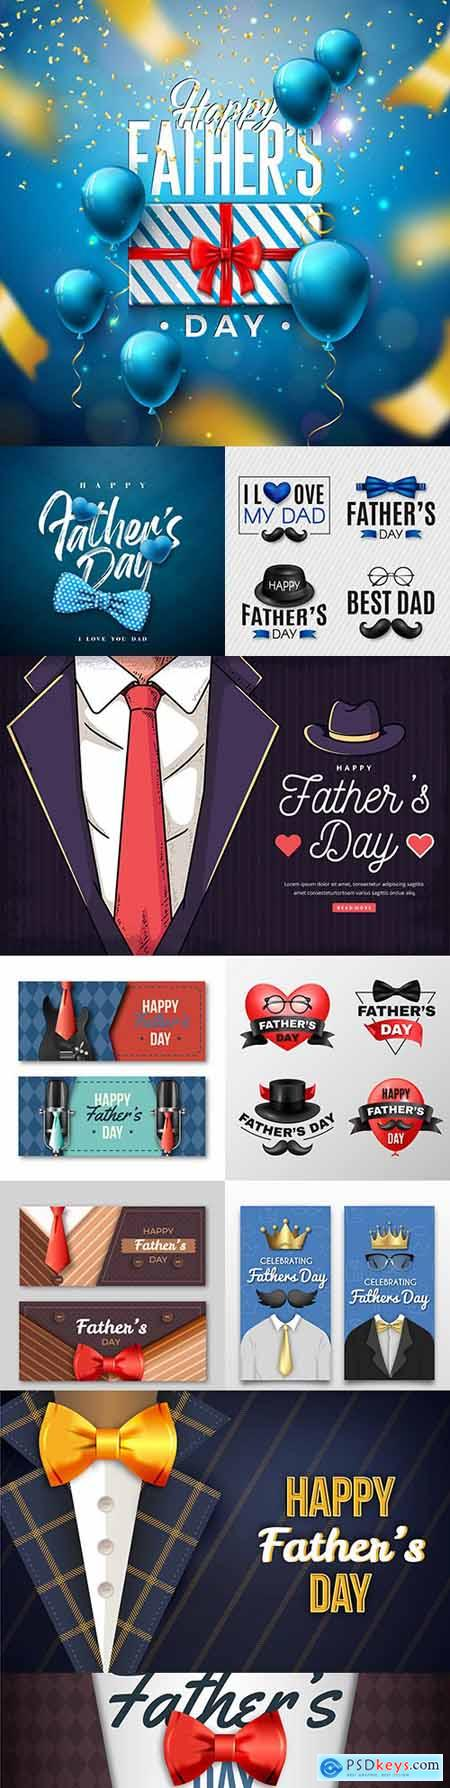 Happy Father s Day design greeting card and banner